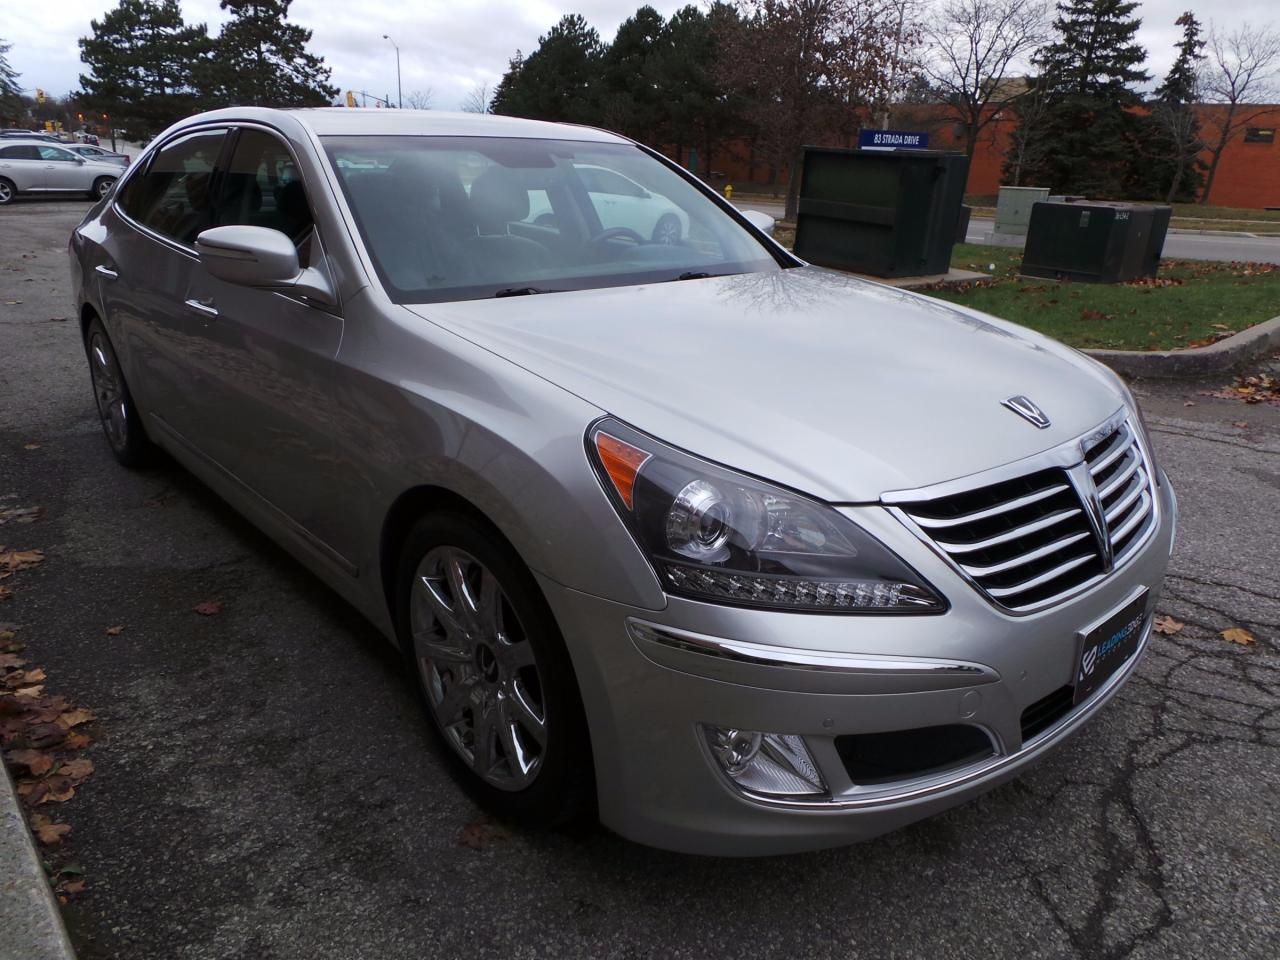 used 2013 hyundai equus signature massaging front seats driver assist for sale in woodbridge. Black Bedroom Furniture Sets. Home Design Ideas